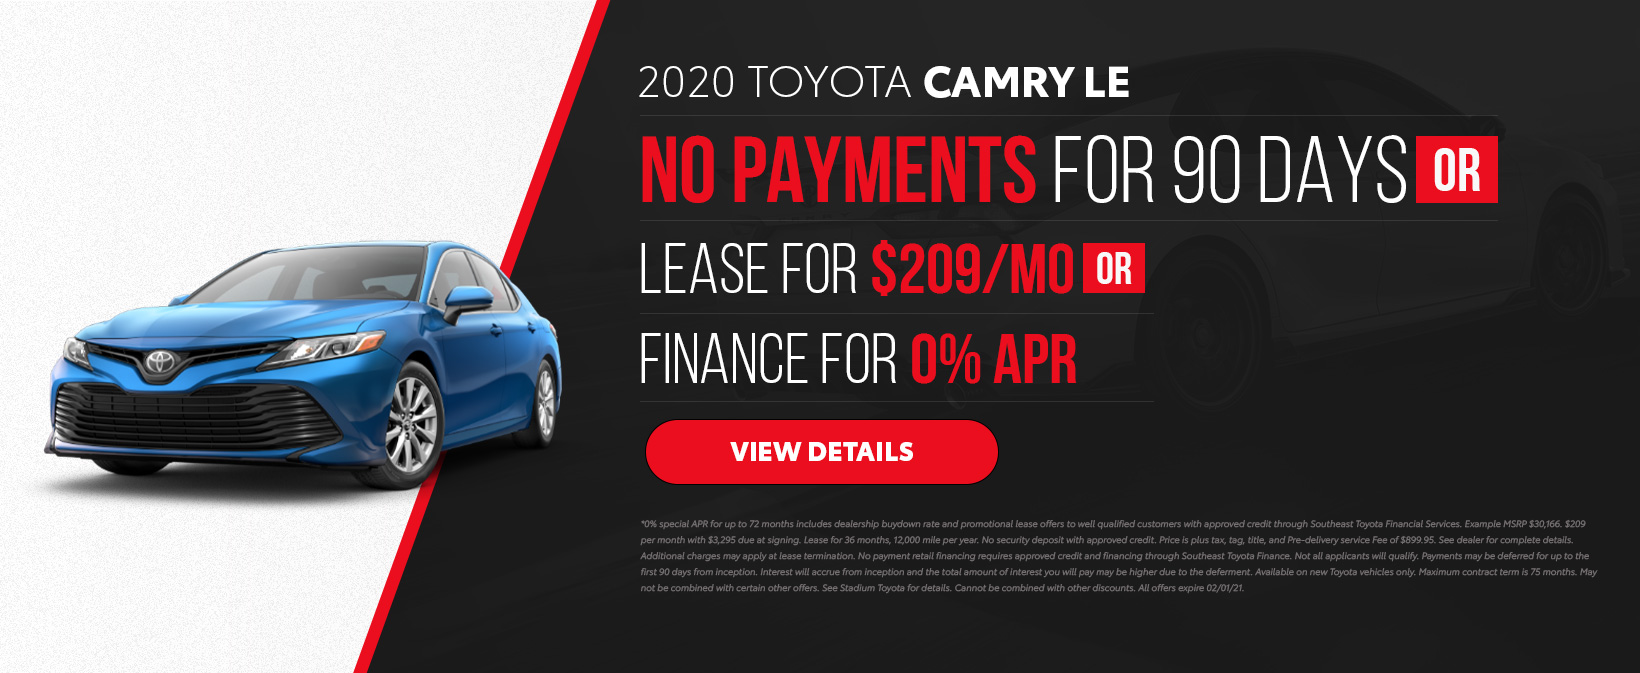 2020 Camry Offer in Tampa, FL